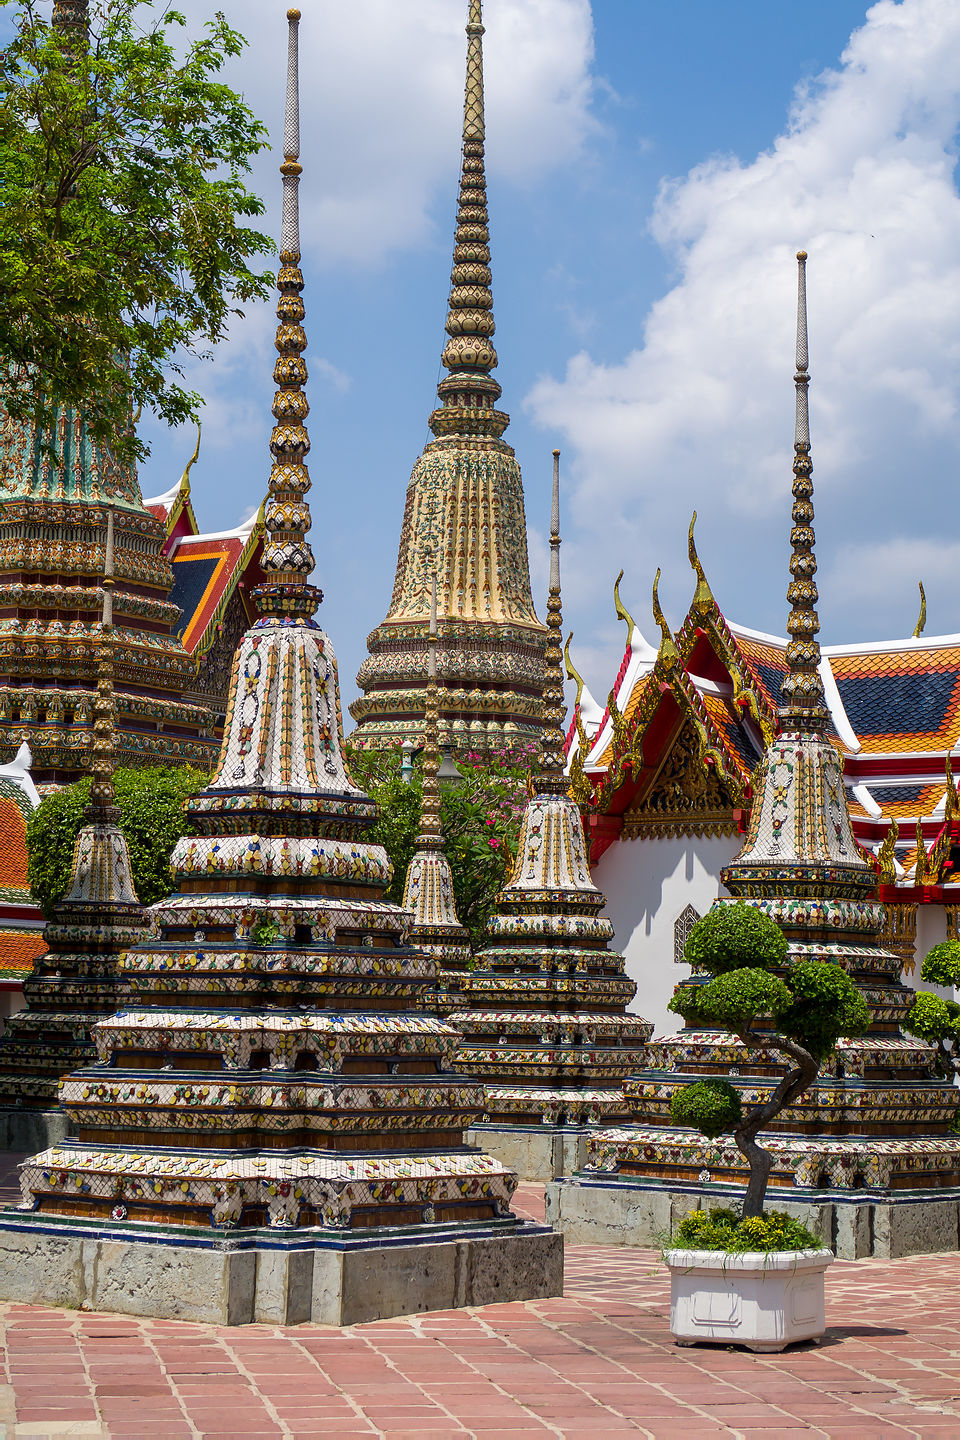 Wat Pho chedis (or stupas) used to house the remains of Buddhist monks or nuns